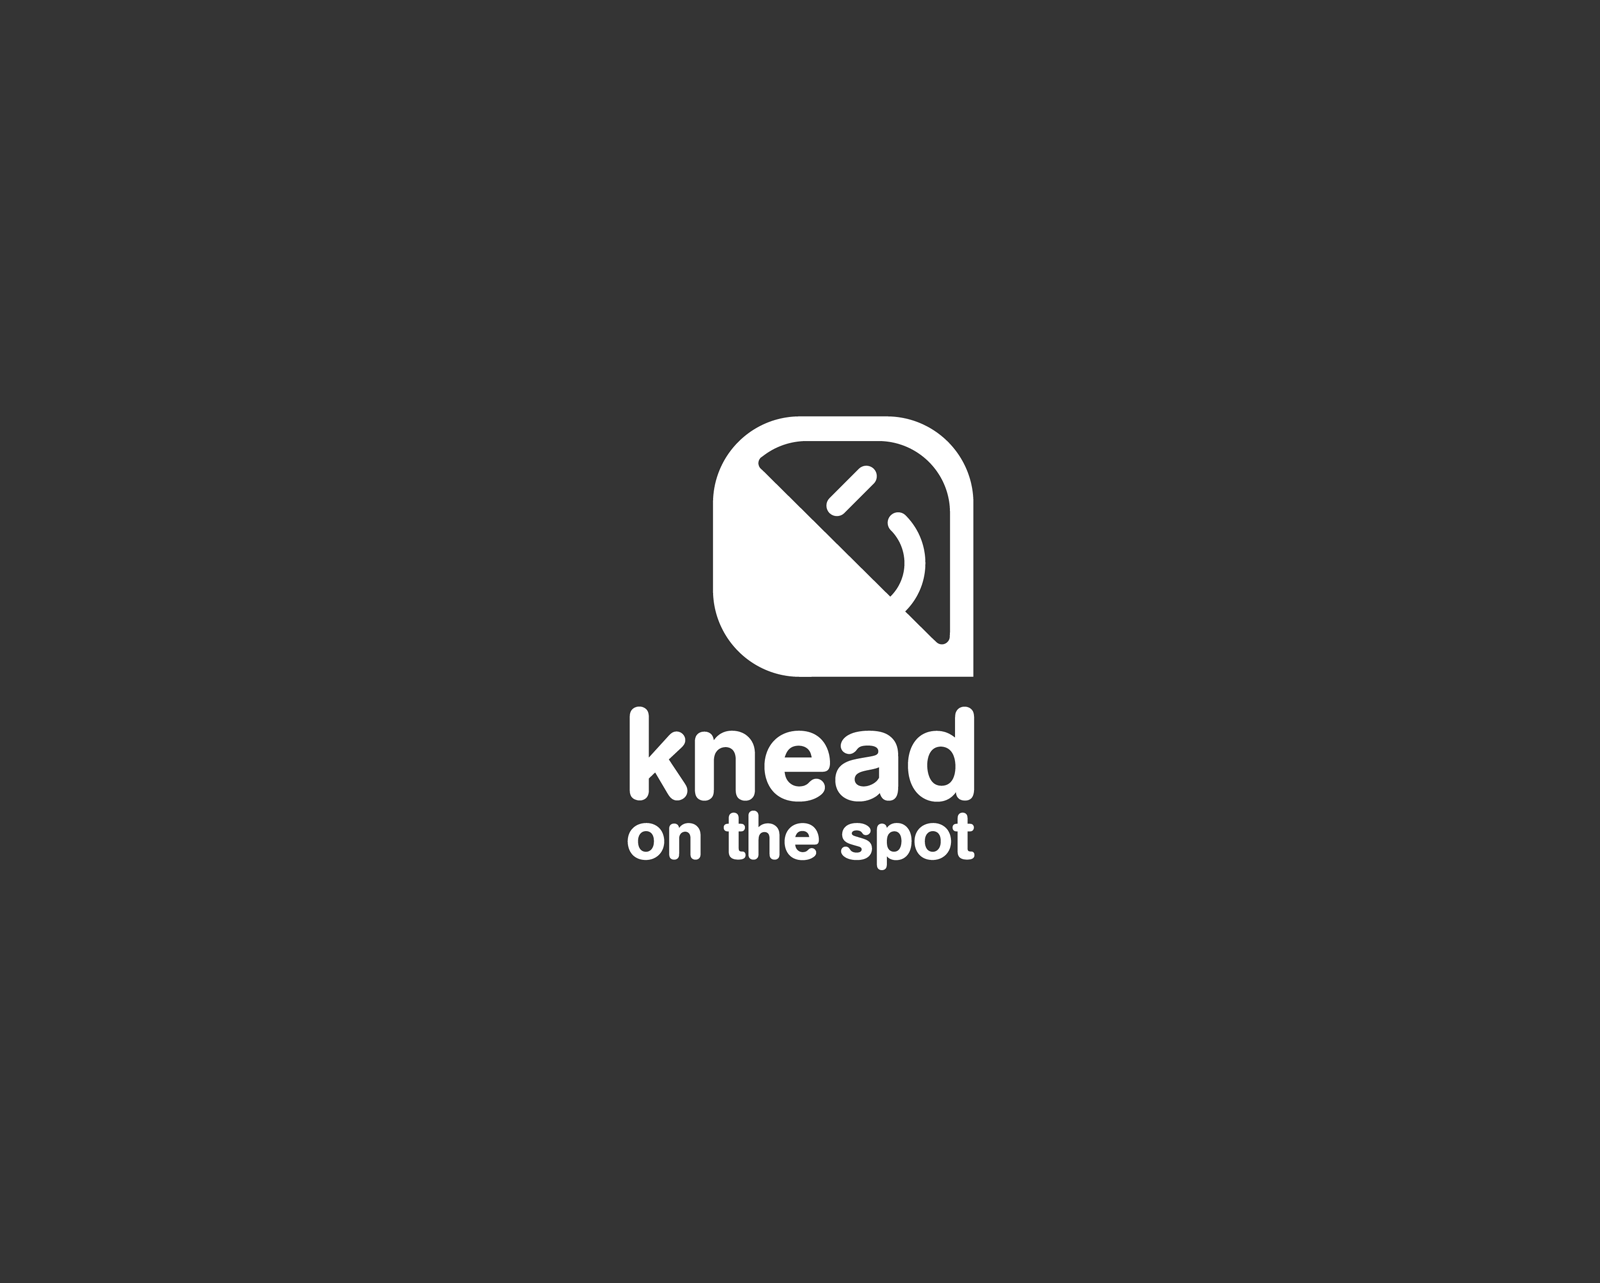 knead-on-the-spot-bwlogo.png